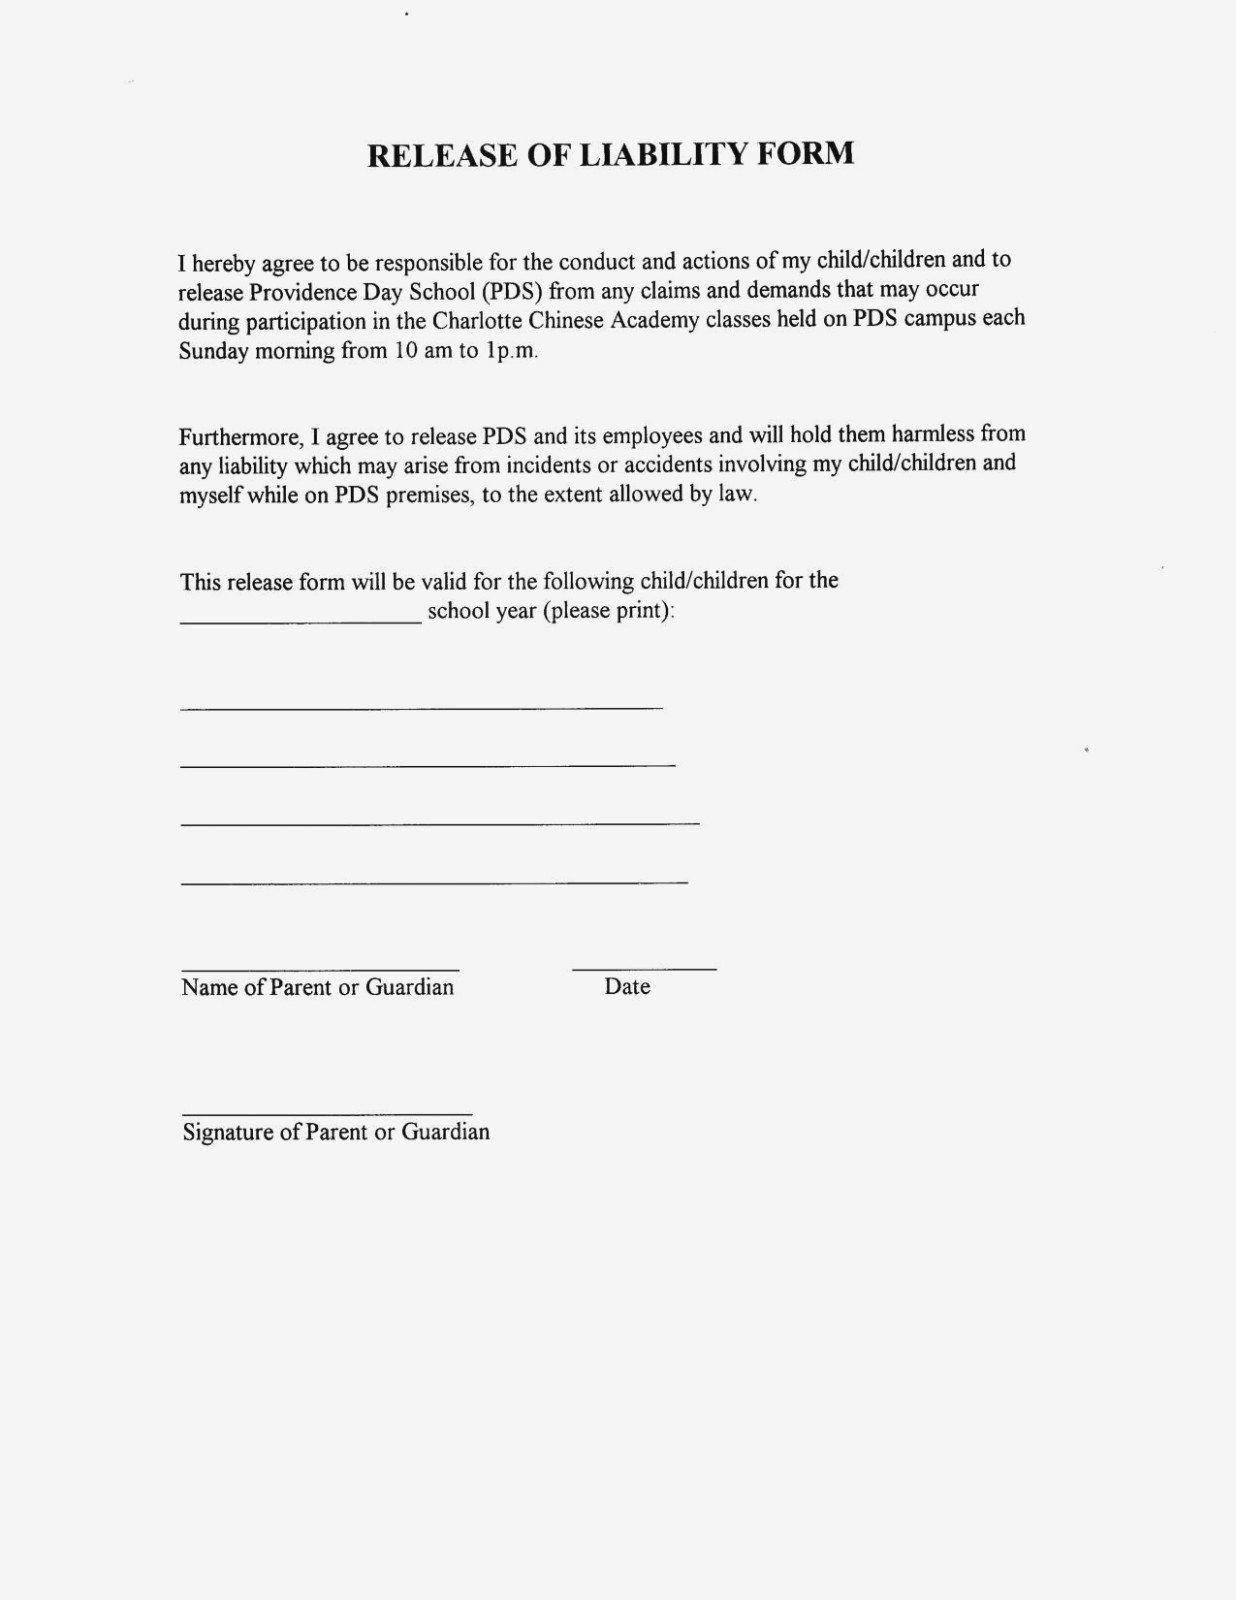 Master Risk Participation Agreement Template Awesome Eur Lex Regarding Risk Participation Agreement Template